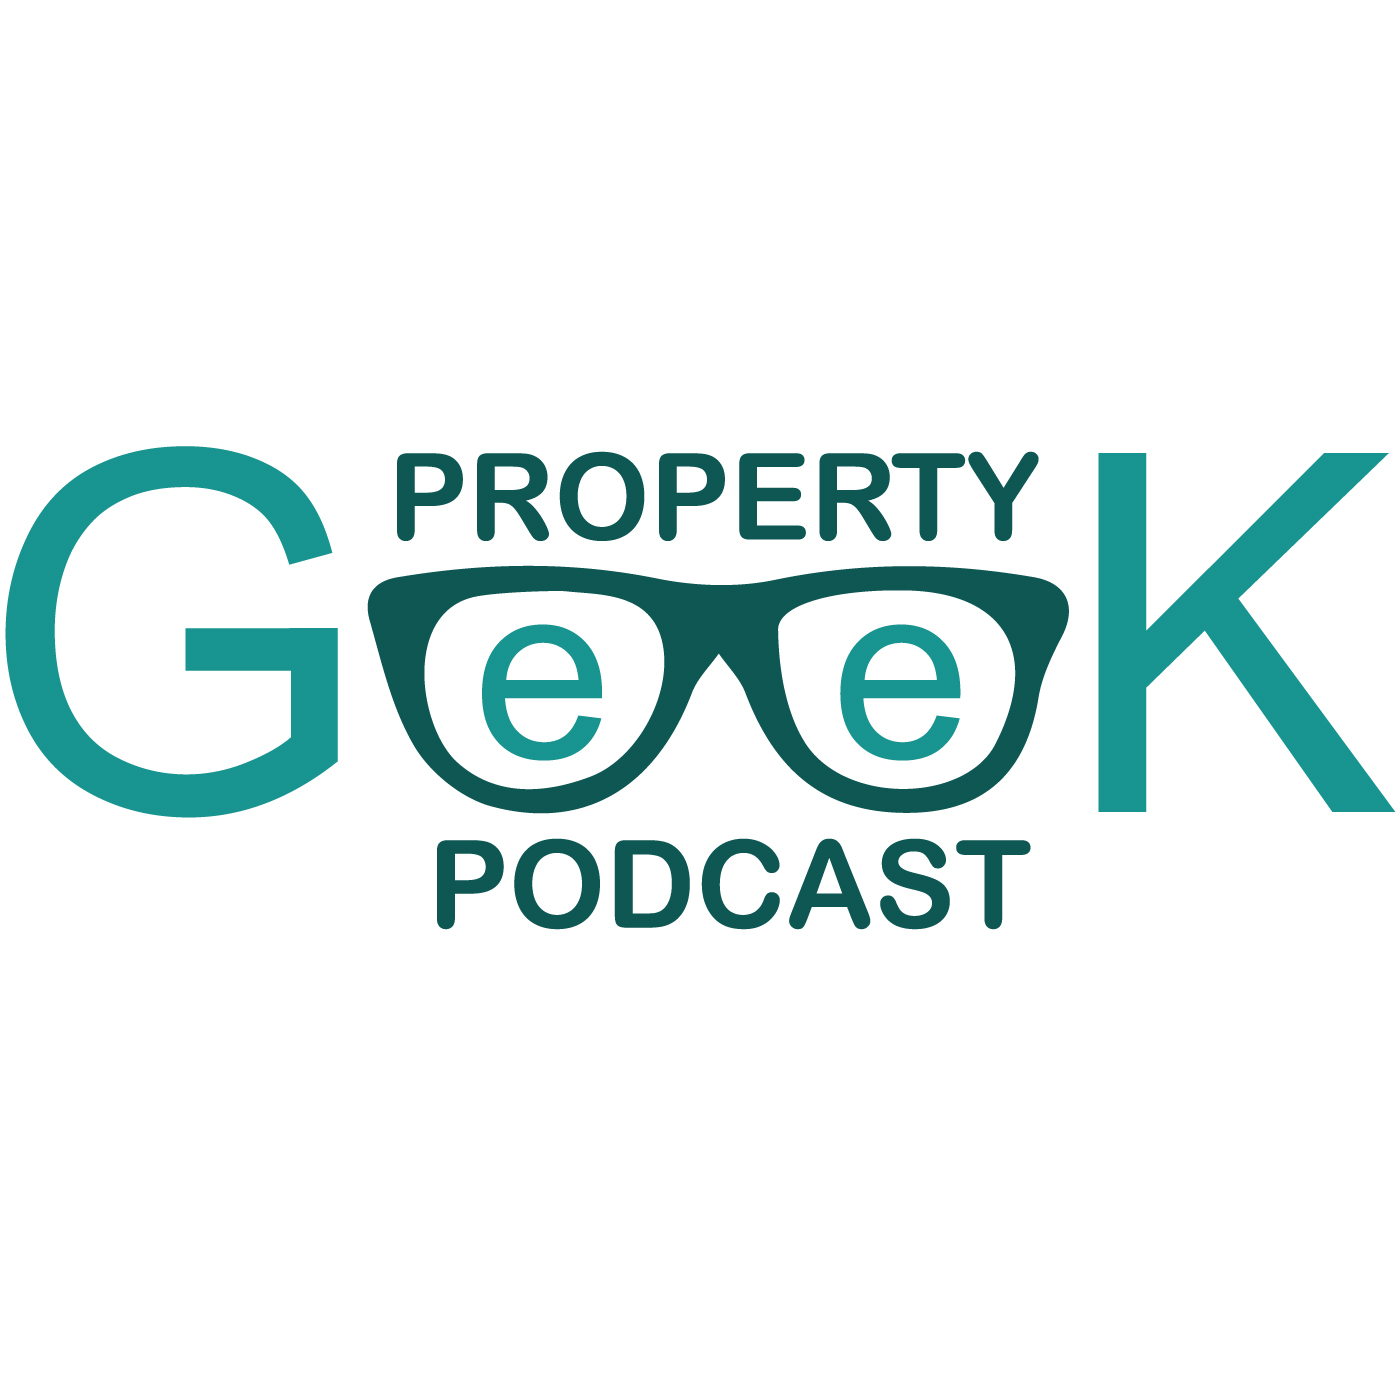 Episode 79: What gets landlords calling for help? An interview with Adrian Thompson from the Guild of Residential Landlords